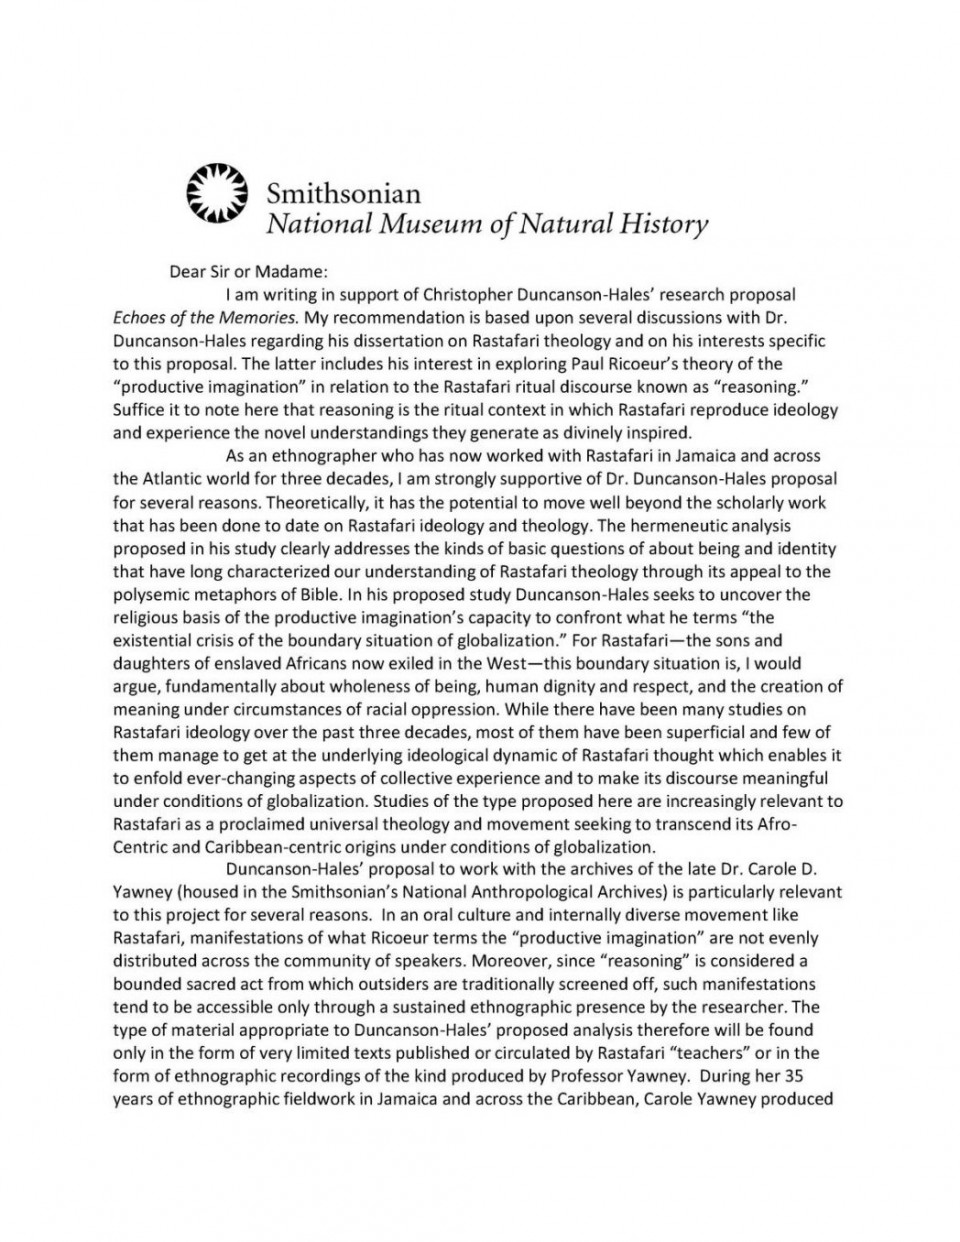 002 Ethnographic Essay Proposal Example Collect How To Write An Dr8 1048x1356 Unique Examples Micro Ethnography 960